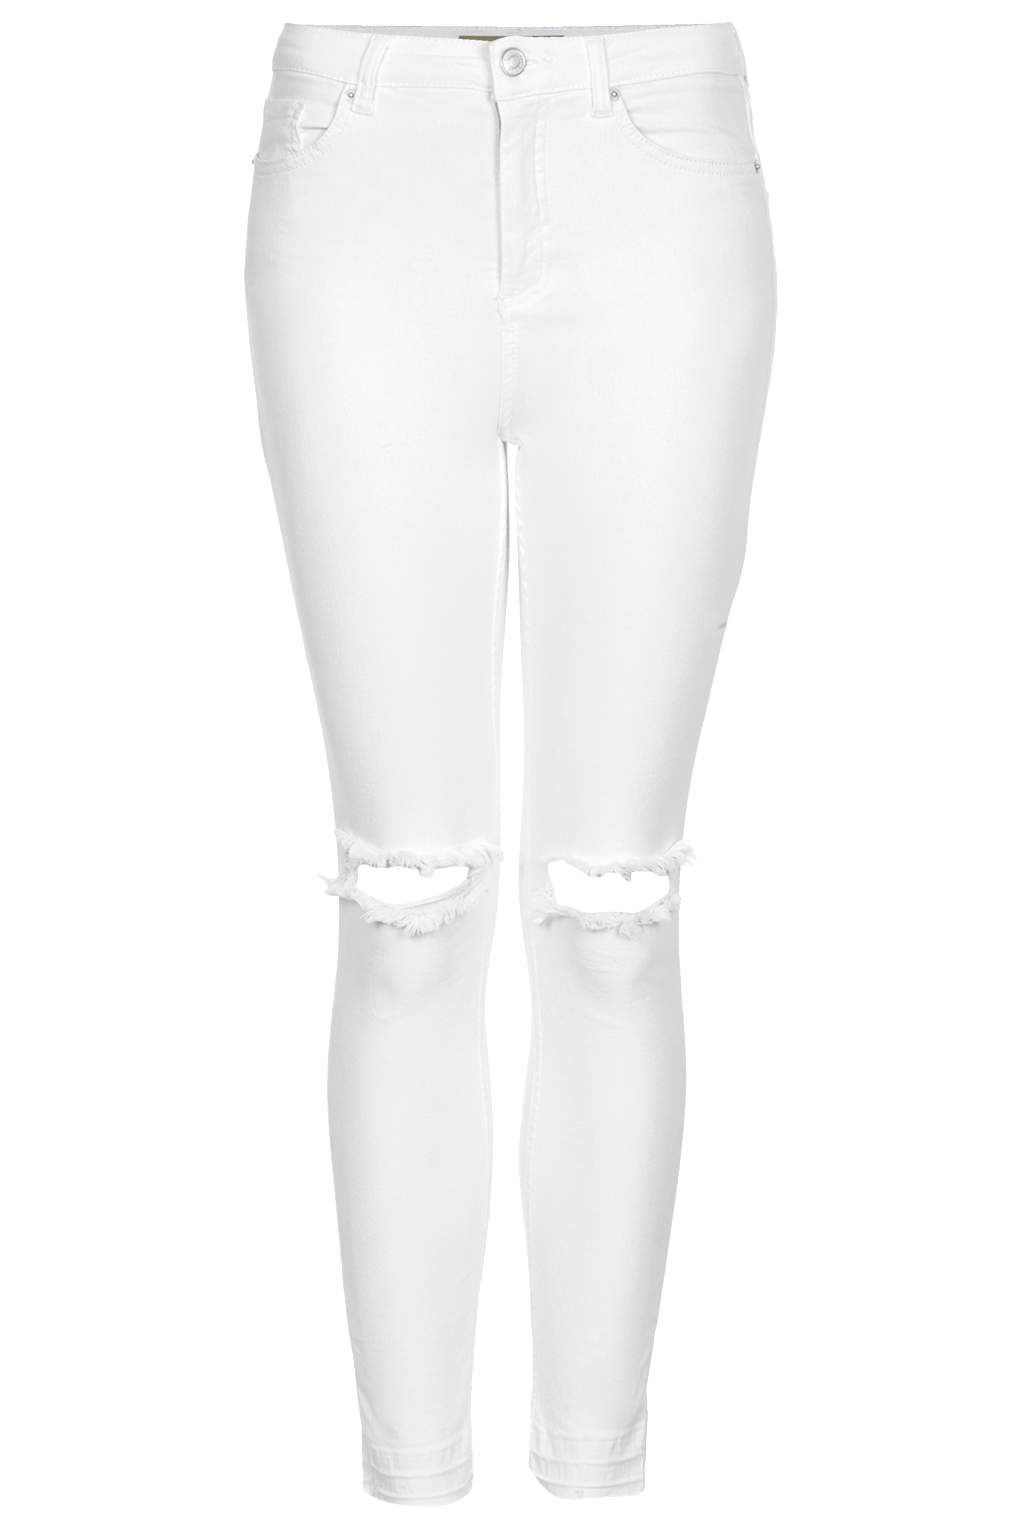 d16c1d11791 TOPSHOP Moto White Ripped Jamie Jeans in White - Lyst